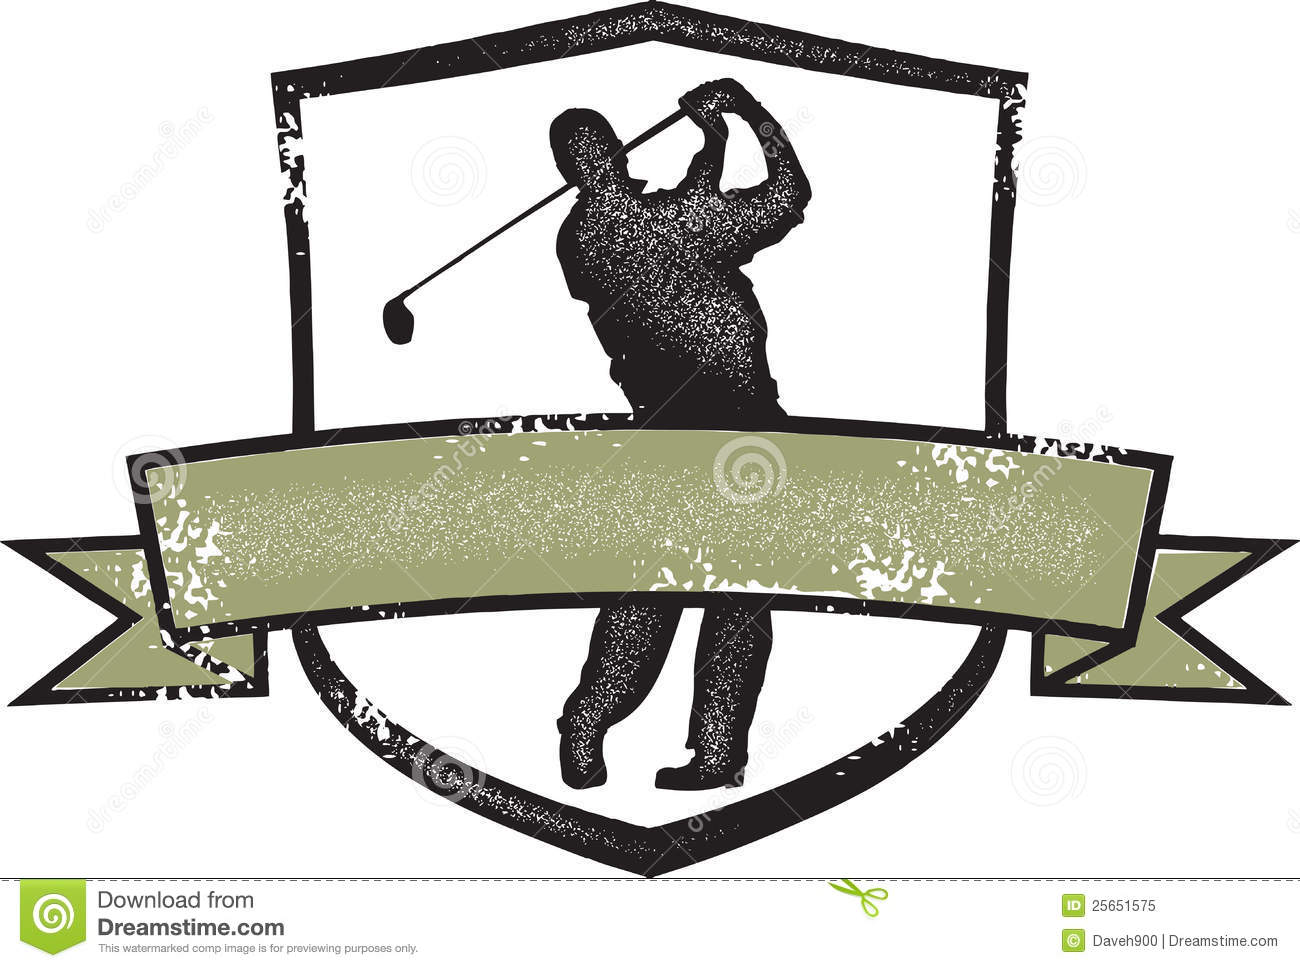 Golf free vector download 166 Free vector for commercial